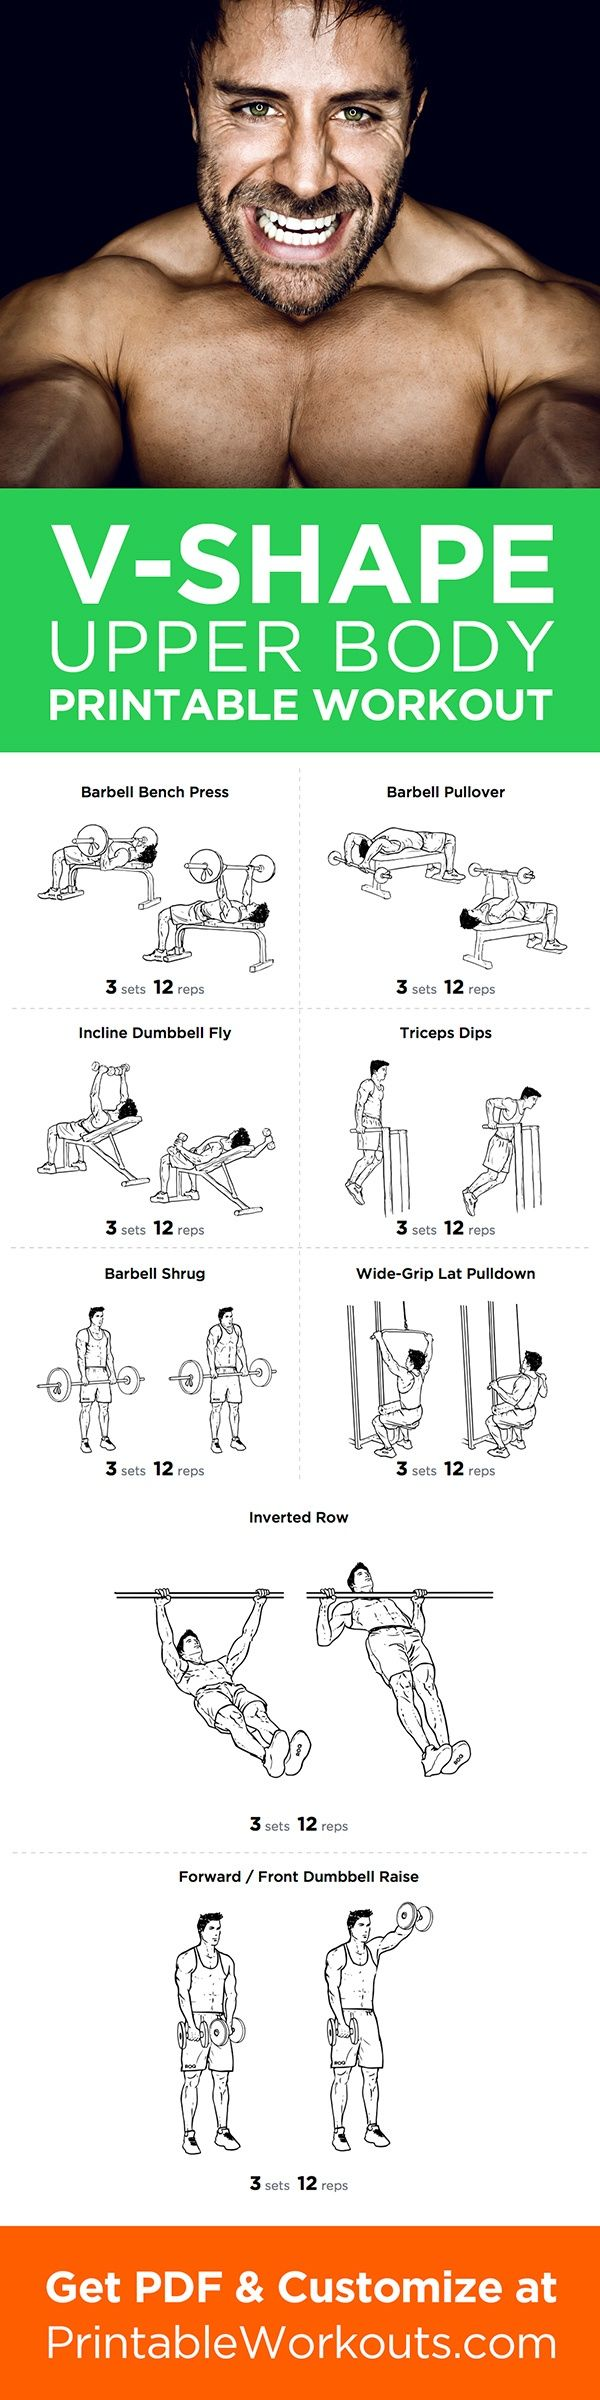 V-Shape Upper Body Printable Workout Plan